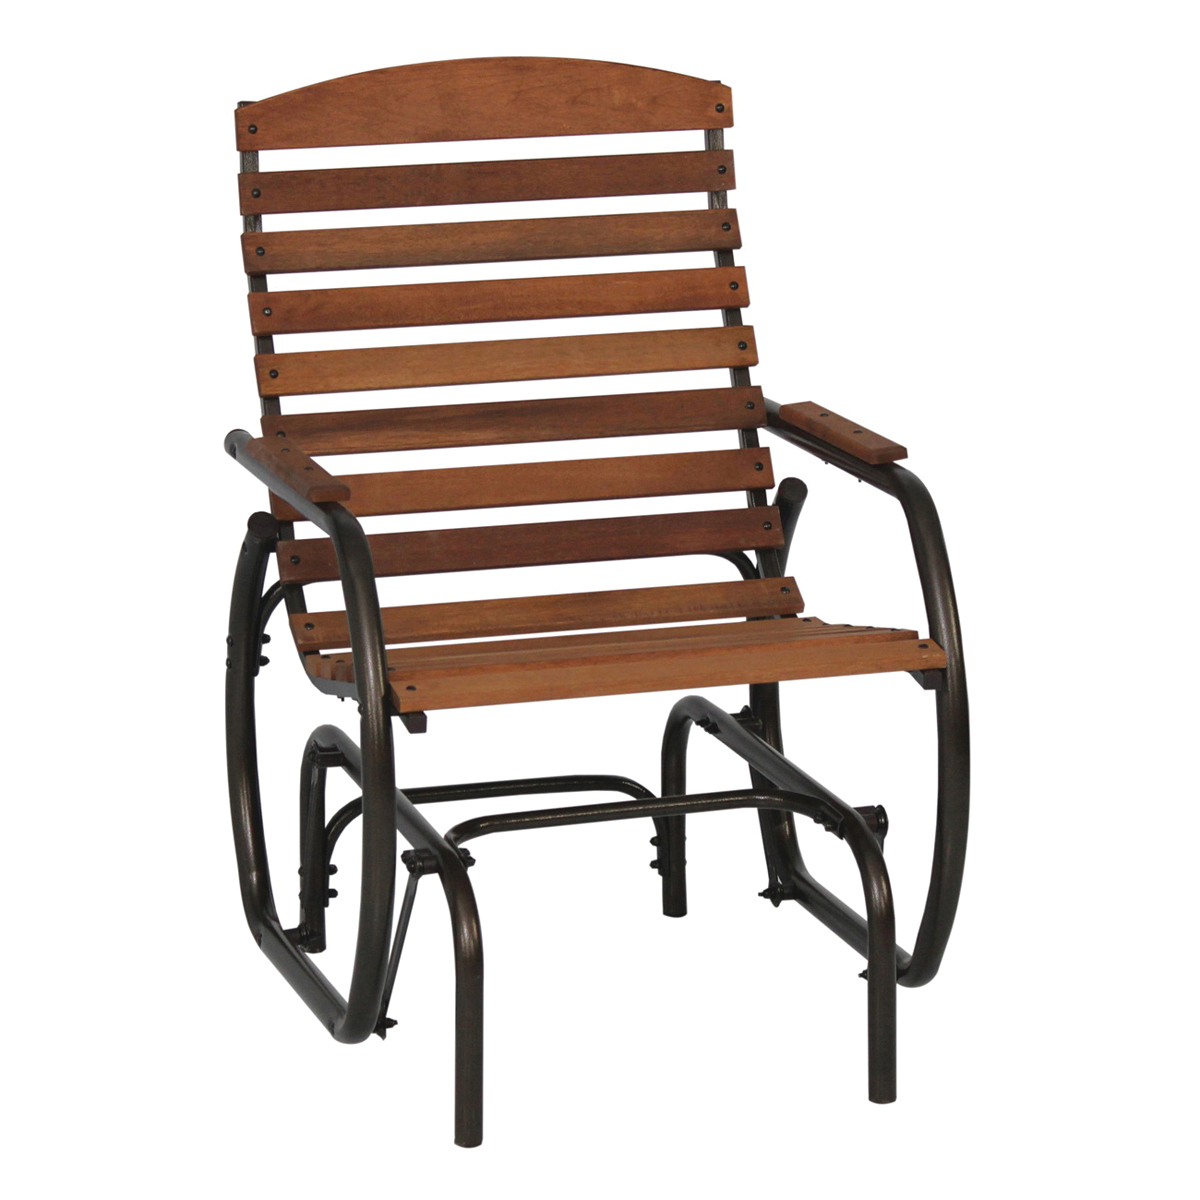 Picture of Seasonal Trends CG41Z Country Garden Glider, 29-1/2 in W, 24-1/2 in D, 37 in H, 250 lb Seating, Bronze Frame